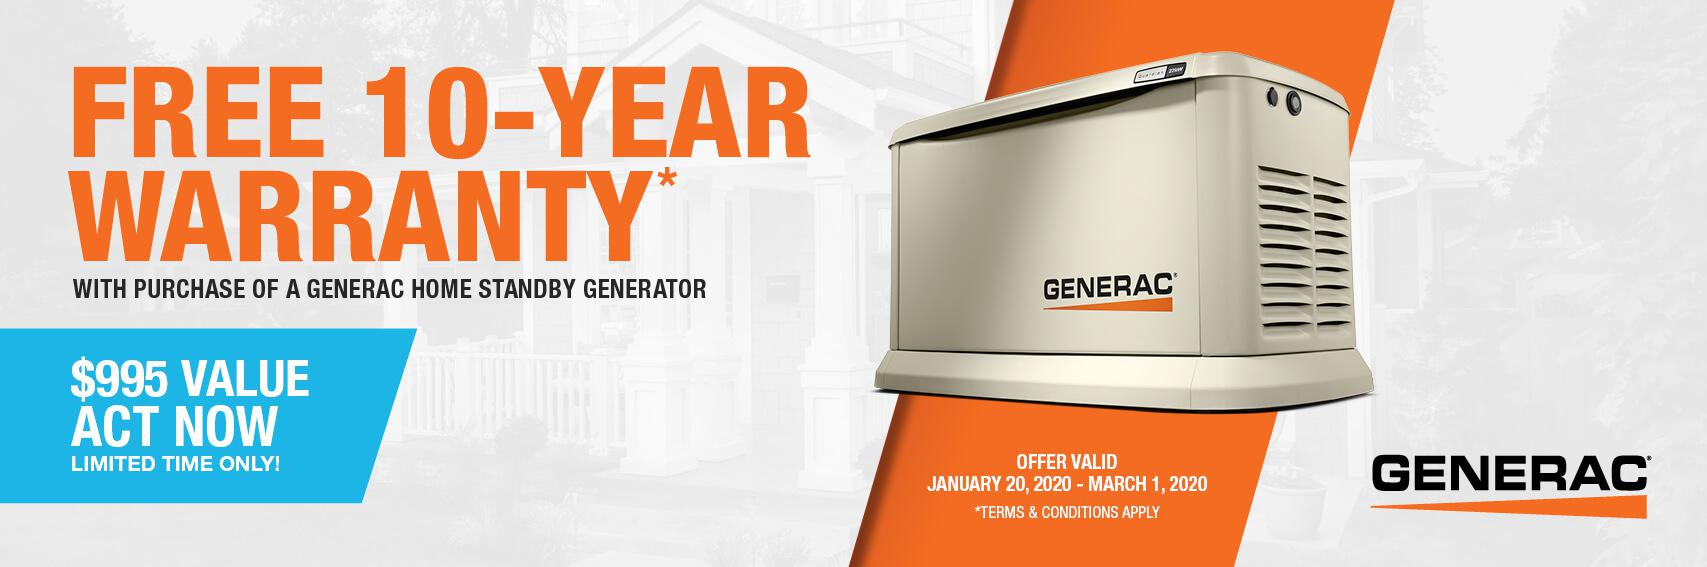 Homestandby Generator Deal | Warranty Offer | Generac Dealer | Indianapolis, IN